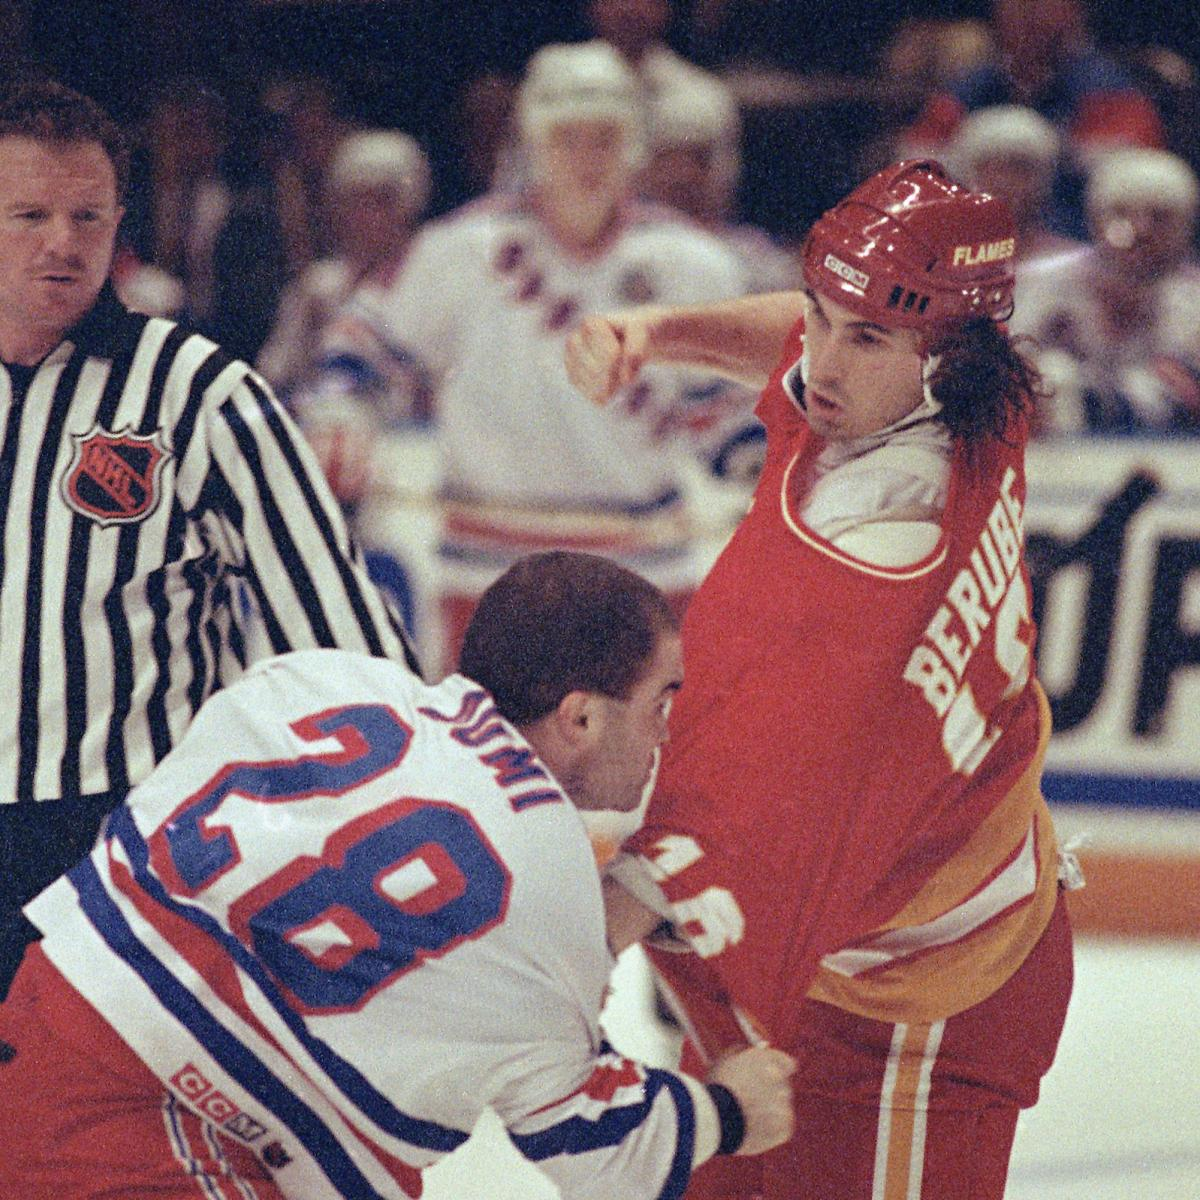 Ranking the 13 Scariest Players in NHL History